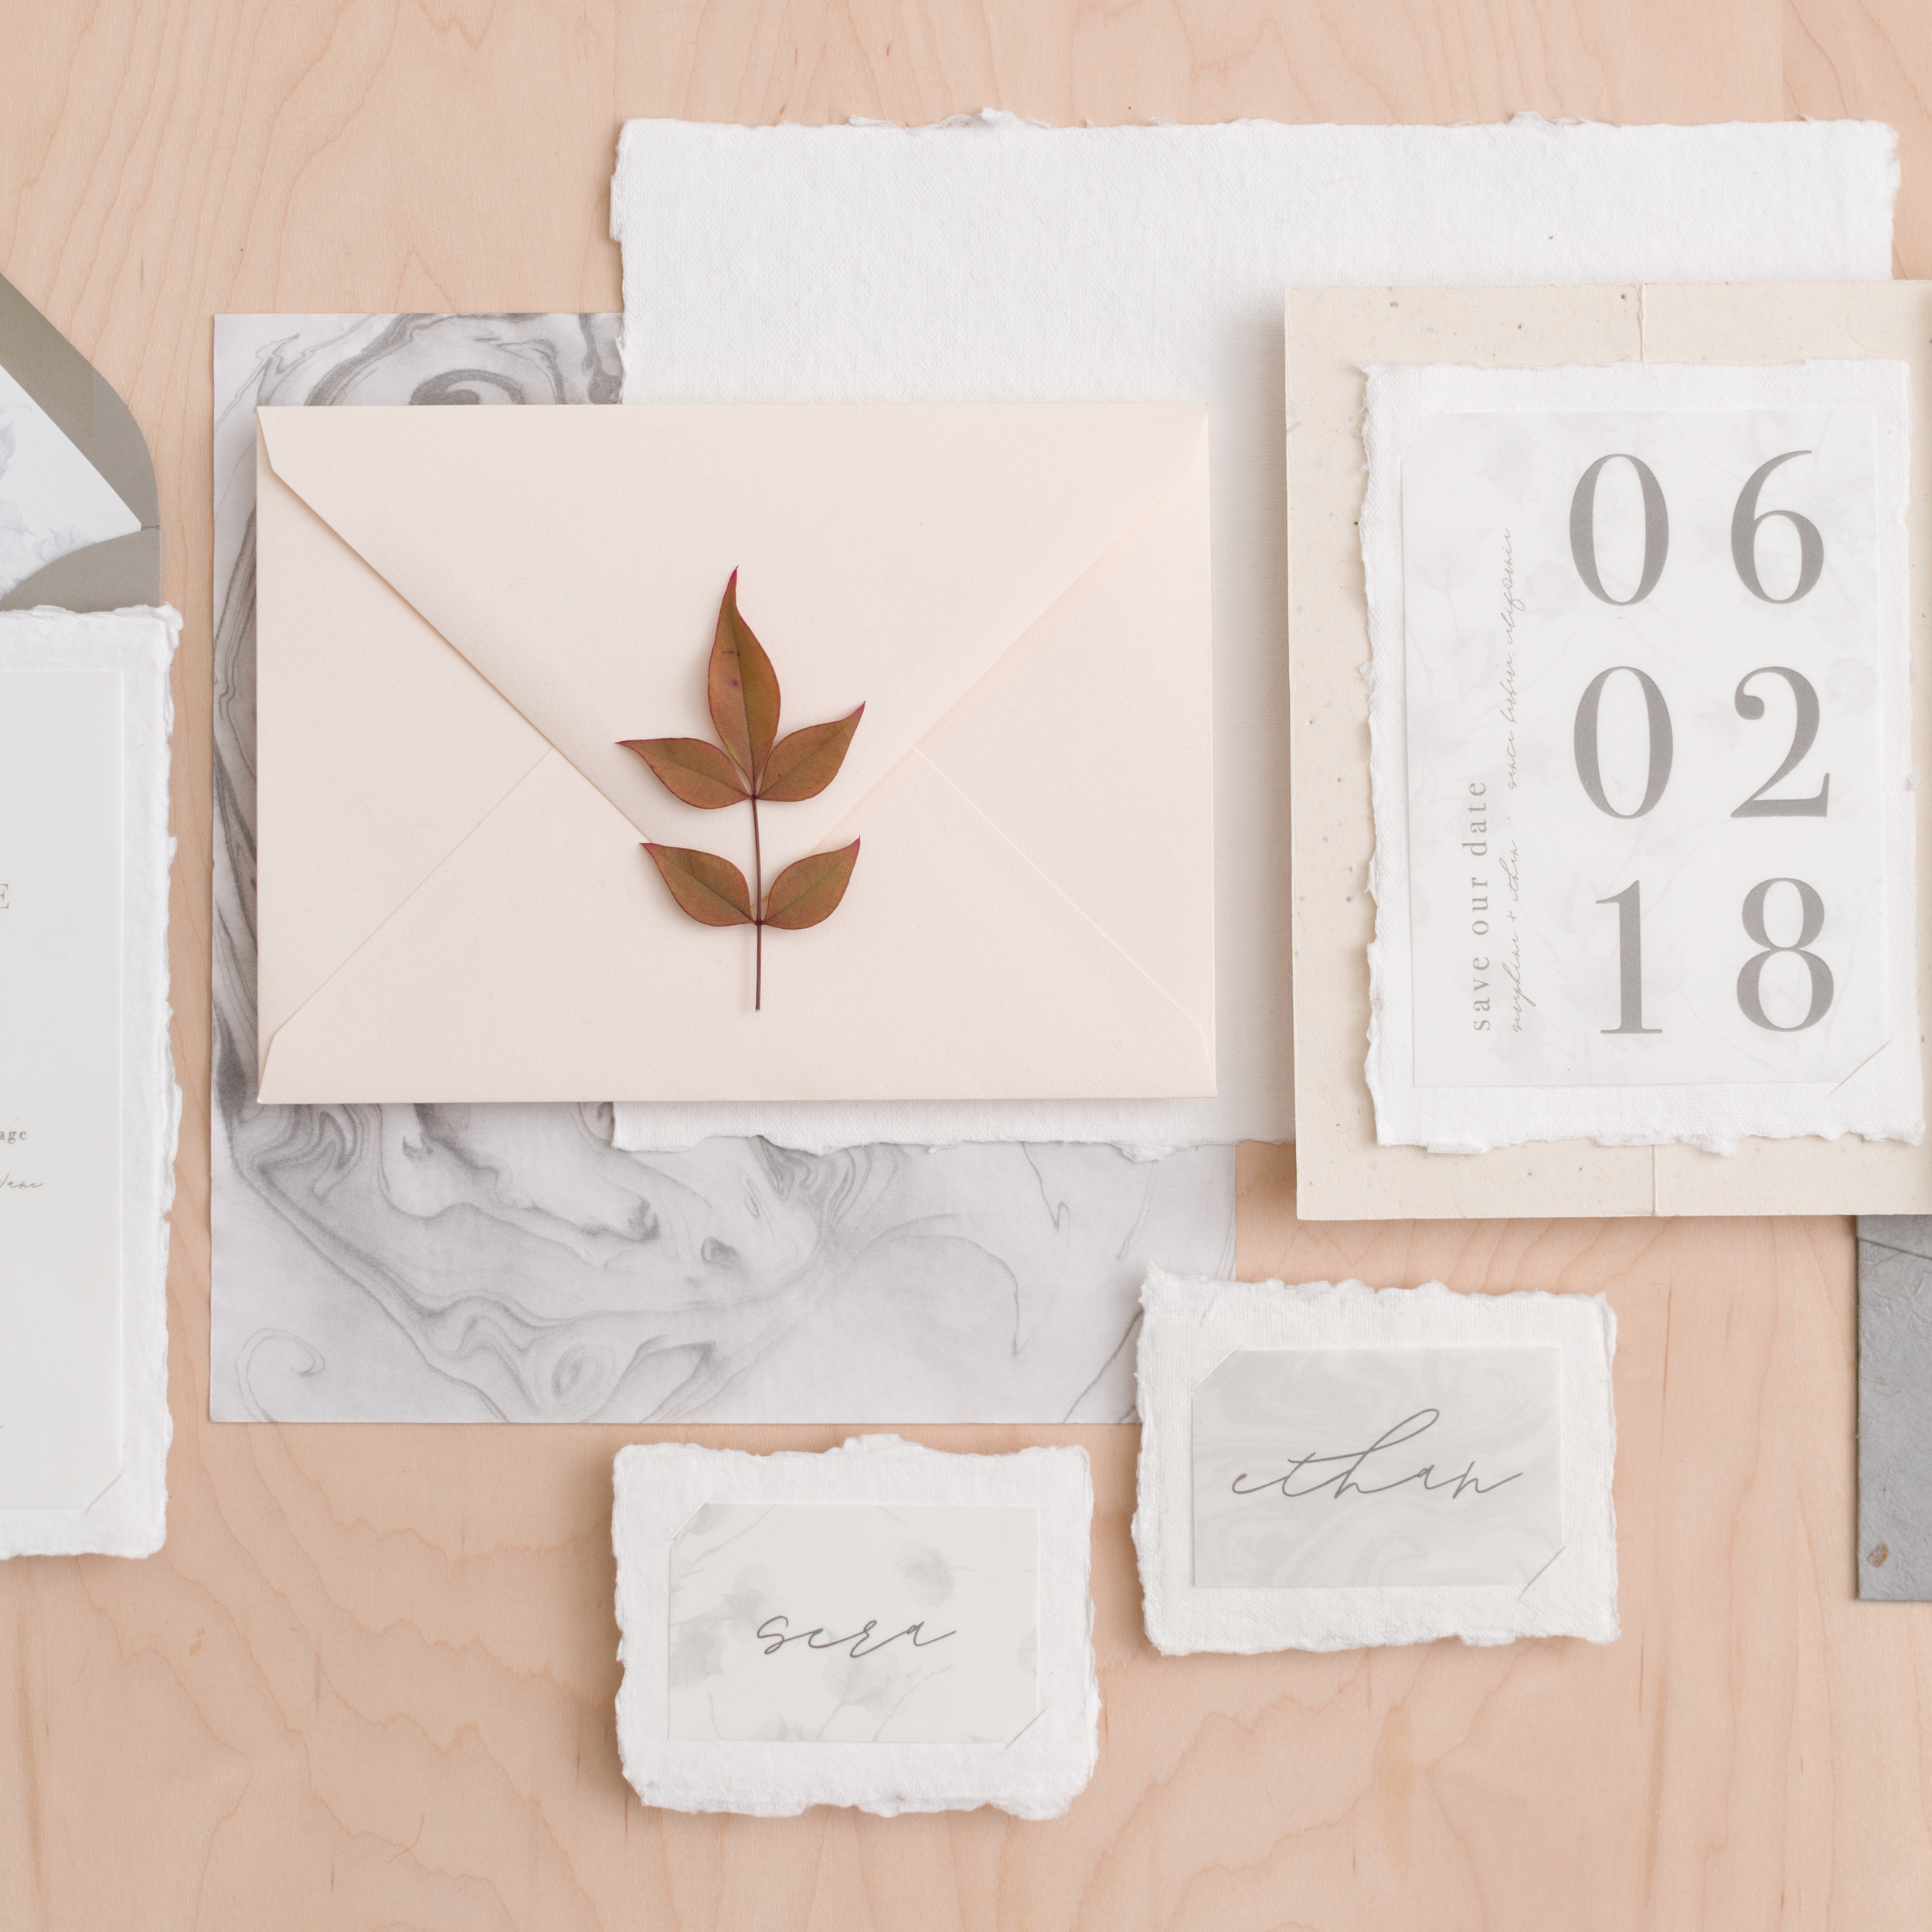 sourced-co-linen-sand-stationery-1.png